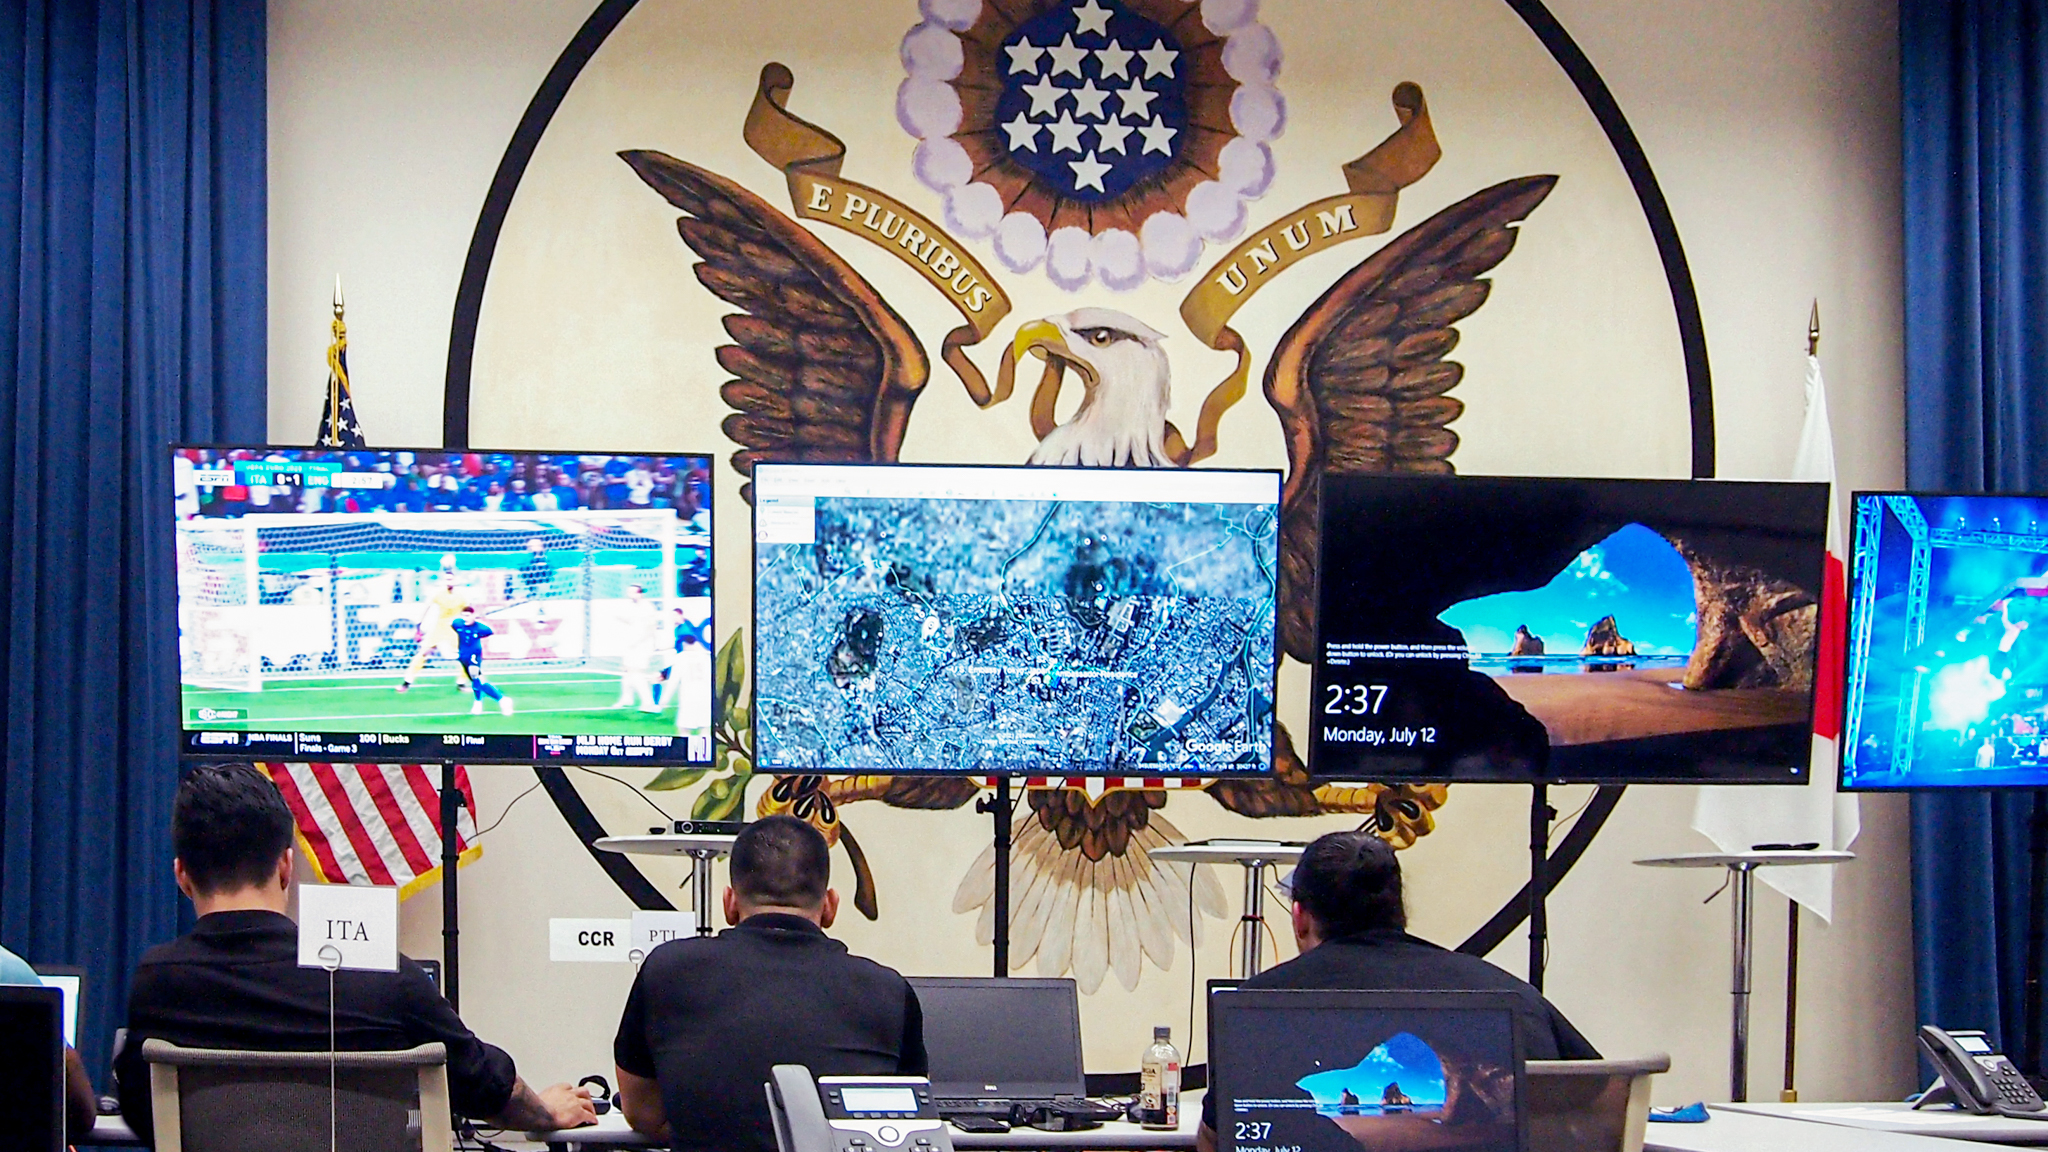 Diplomatic Security Service personnel and interagency partners work at the Joint Operations Center, which provides TVs with a bird's-eye view of the Olympic games, July 12. Photo by Angelica Harrison